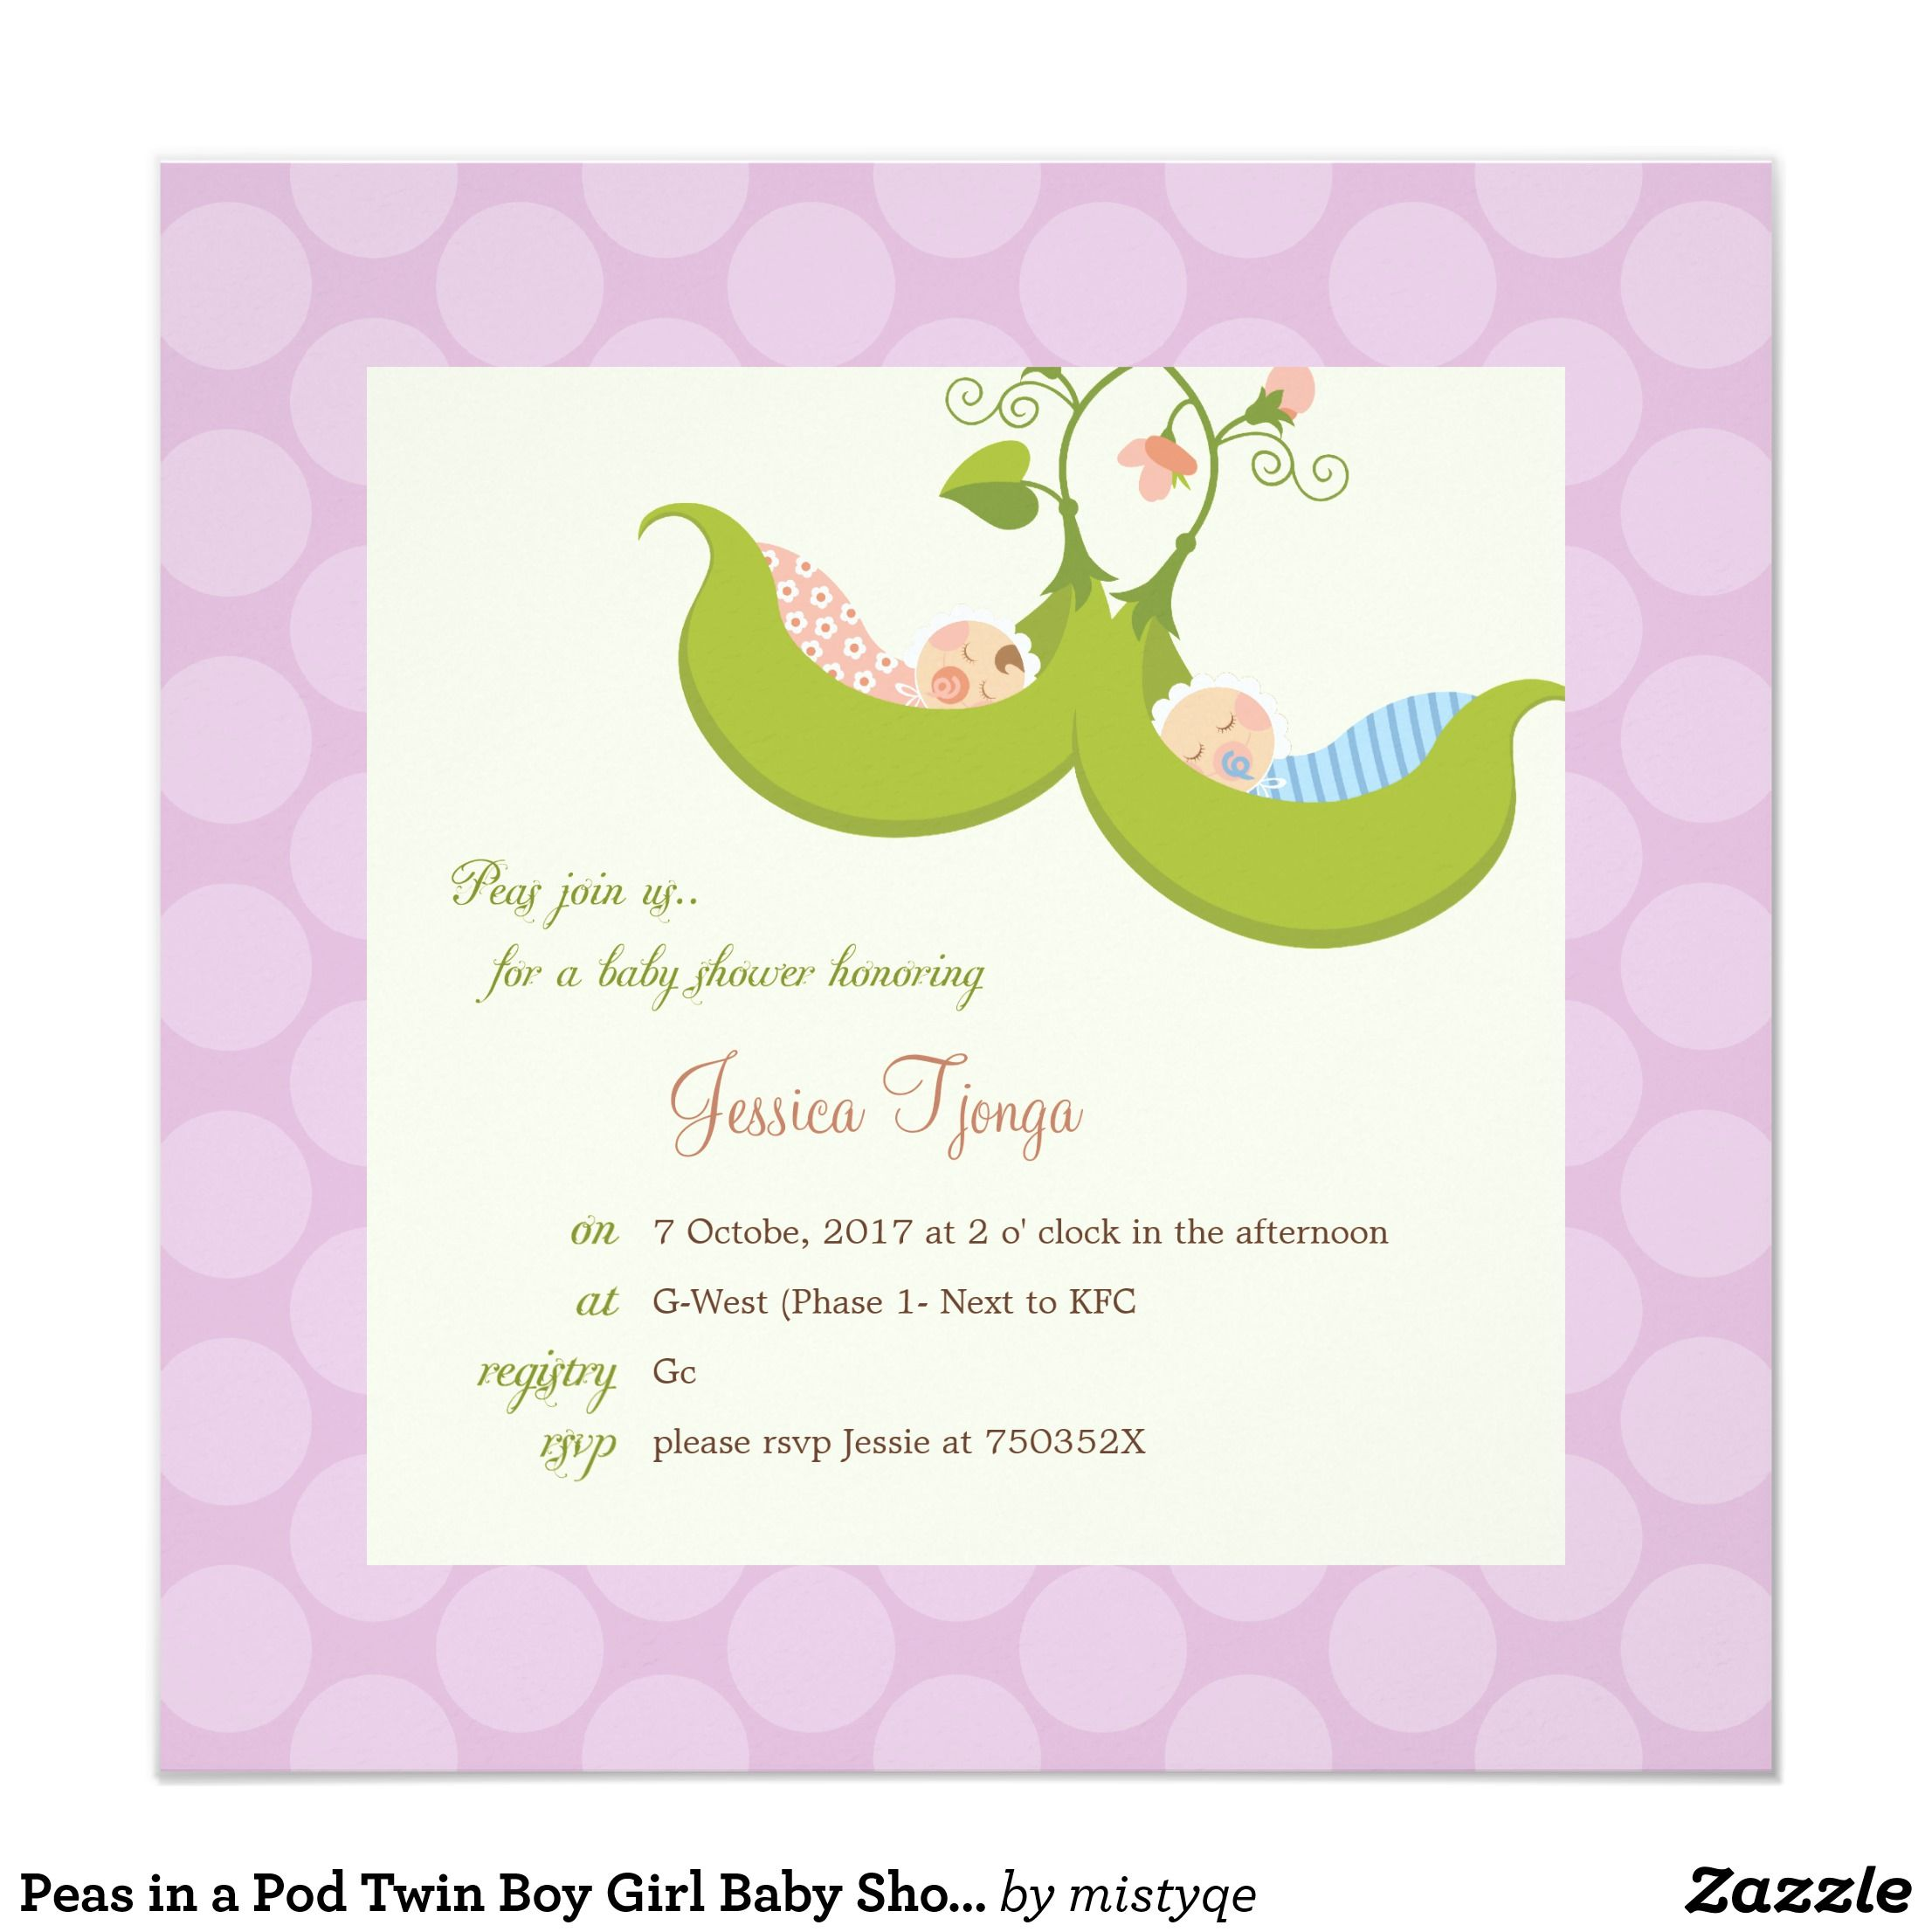 Peas in a Pod Twin Boy Girl Baby Shower Invitation | Twin boys and ...